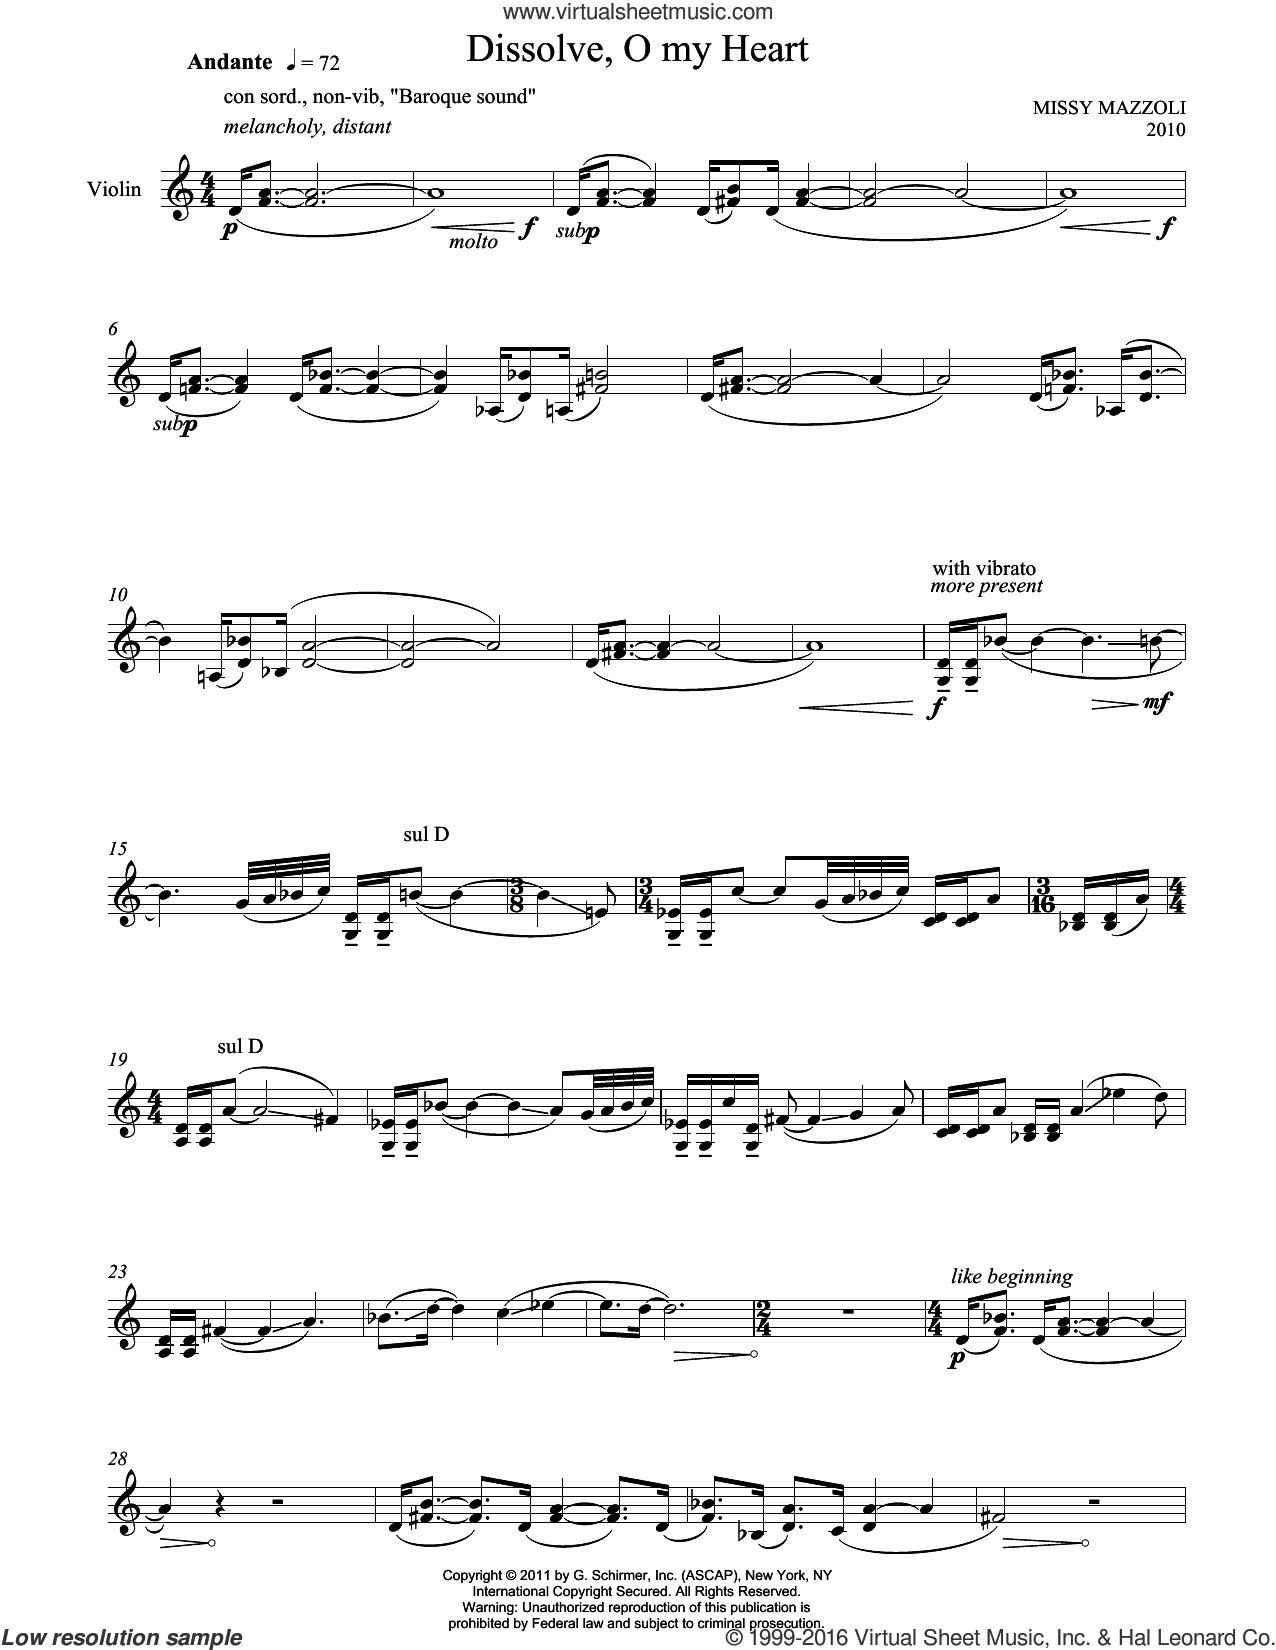 Dissolve, O My Heart sheet music for violin solo by Missy Mazzoli, classical score, intermediate. Score Image Preview.